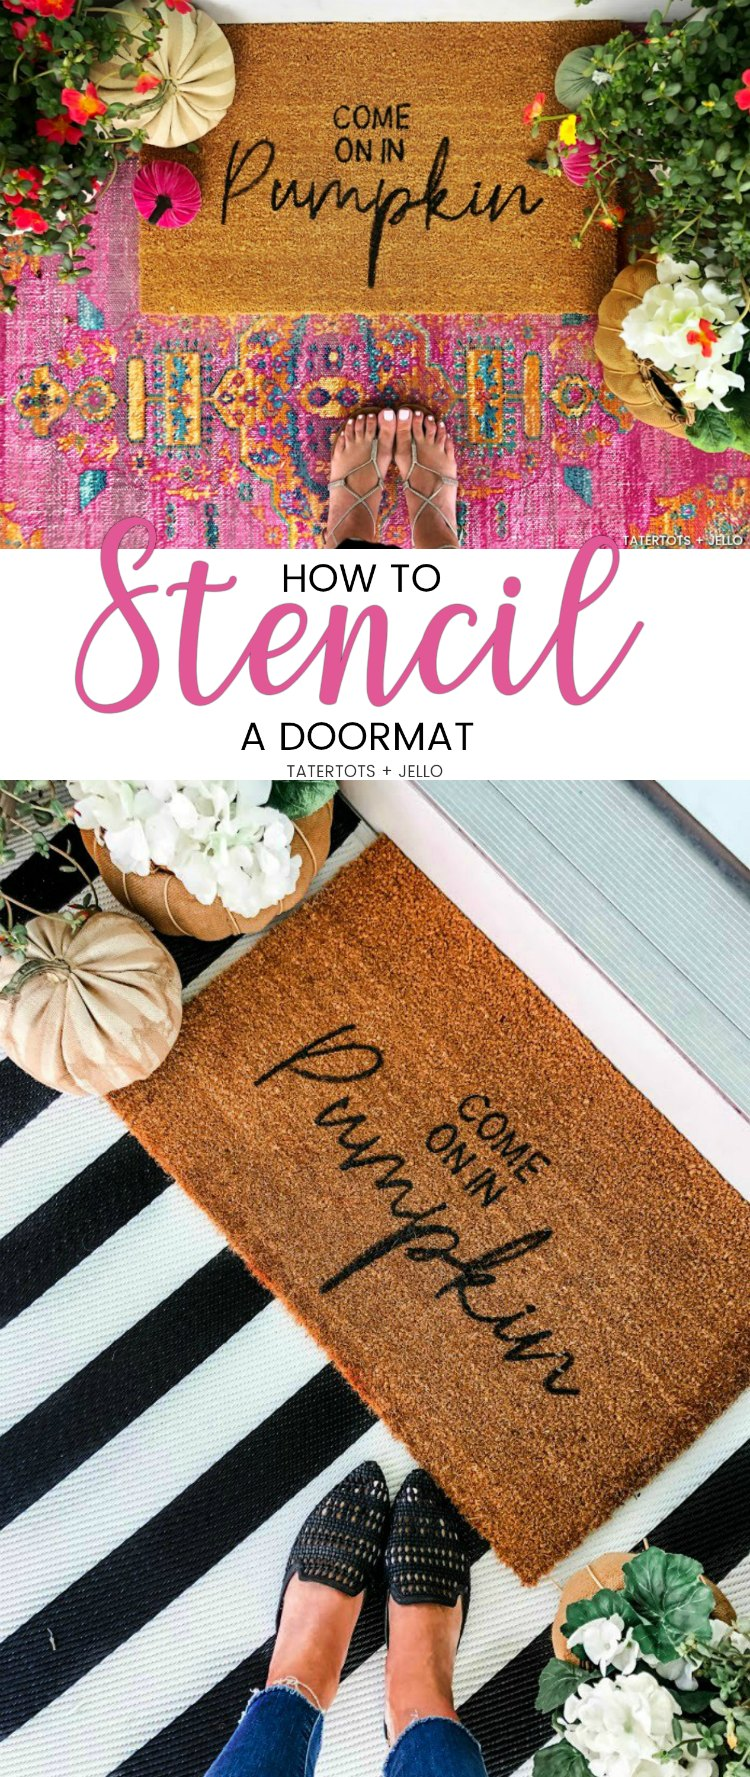 Make an Easy Fall Stenciled Doormat! All you need is a plain doormat and paint to create a welcoming doormat for Fall.